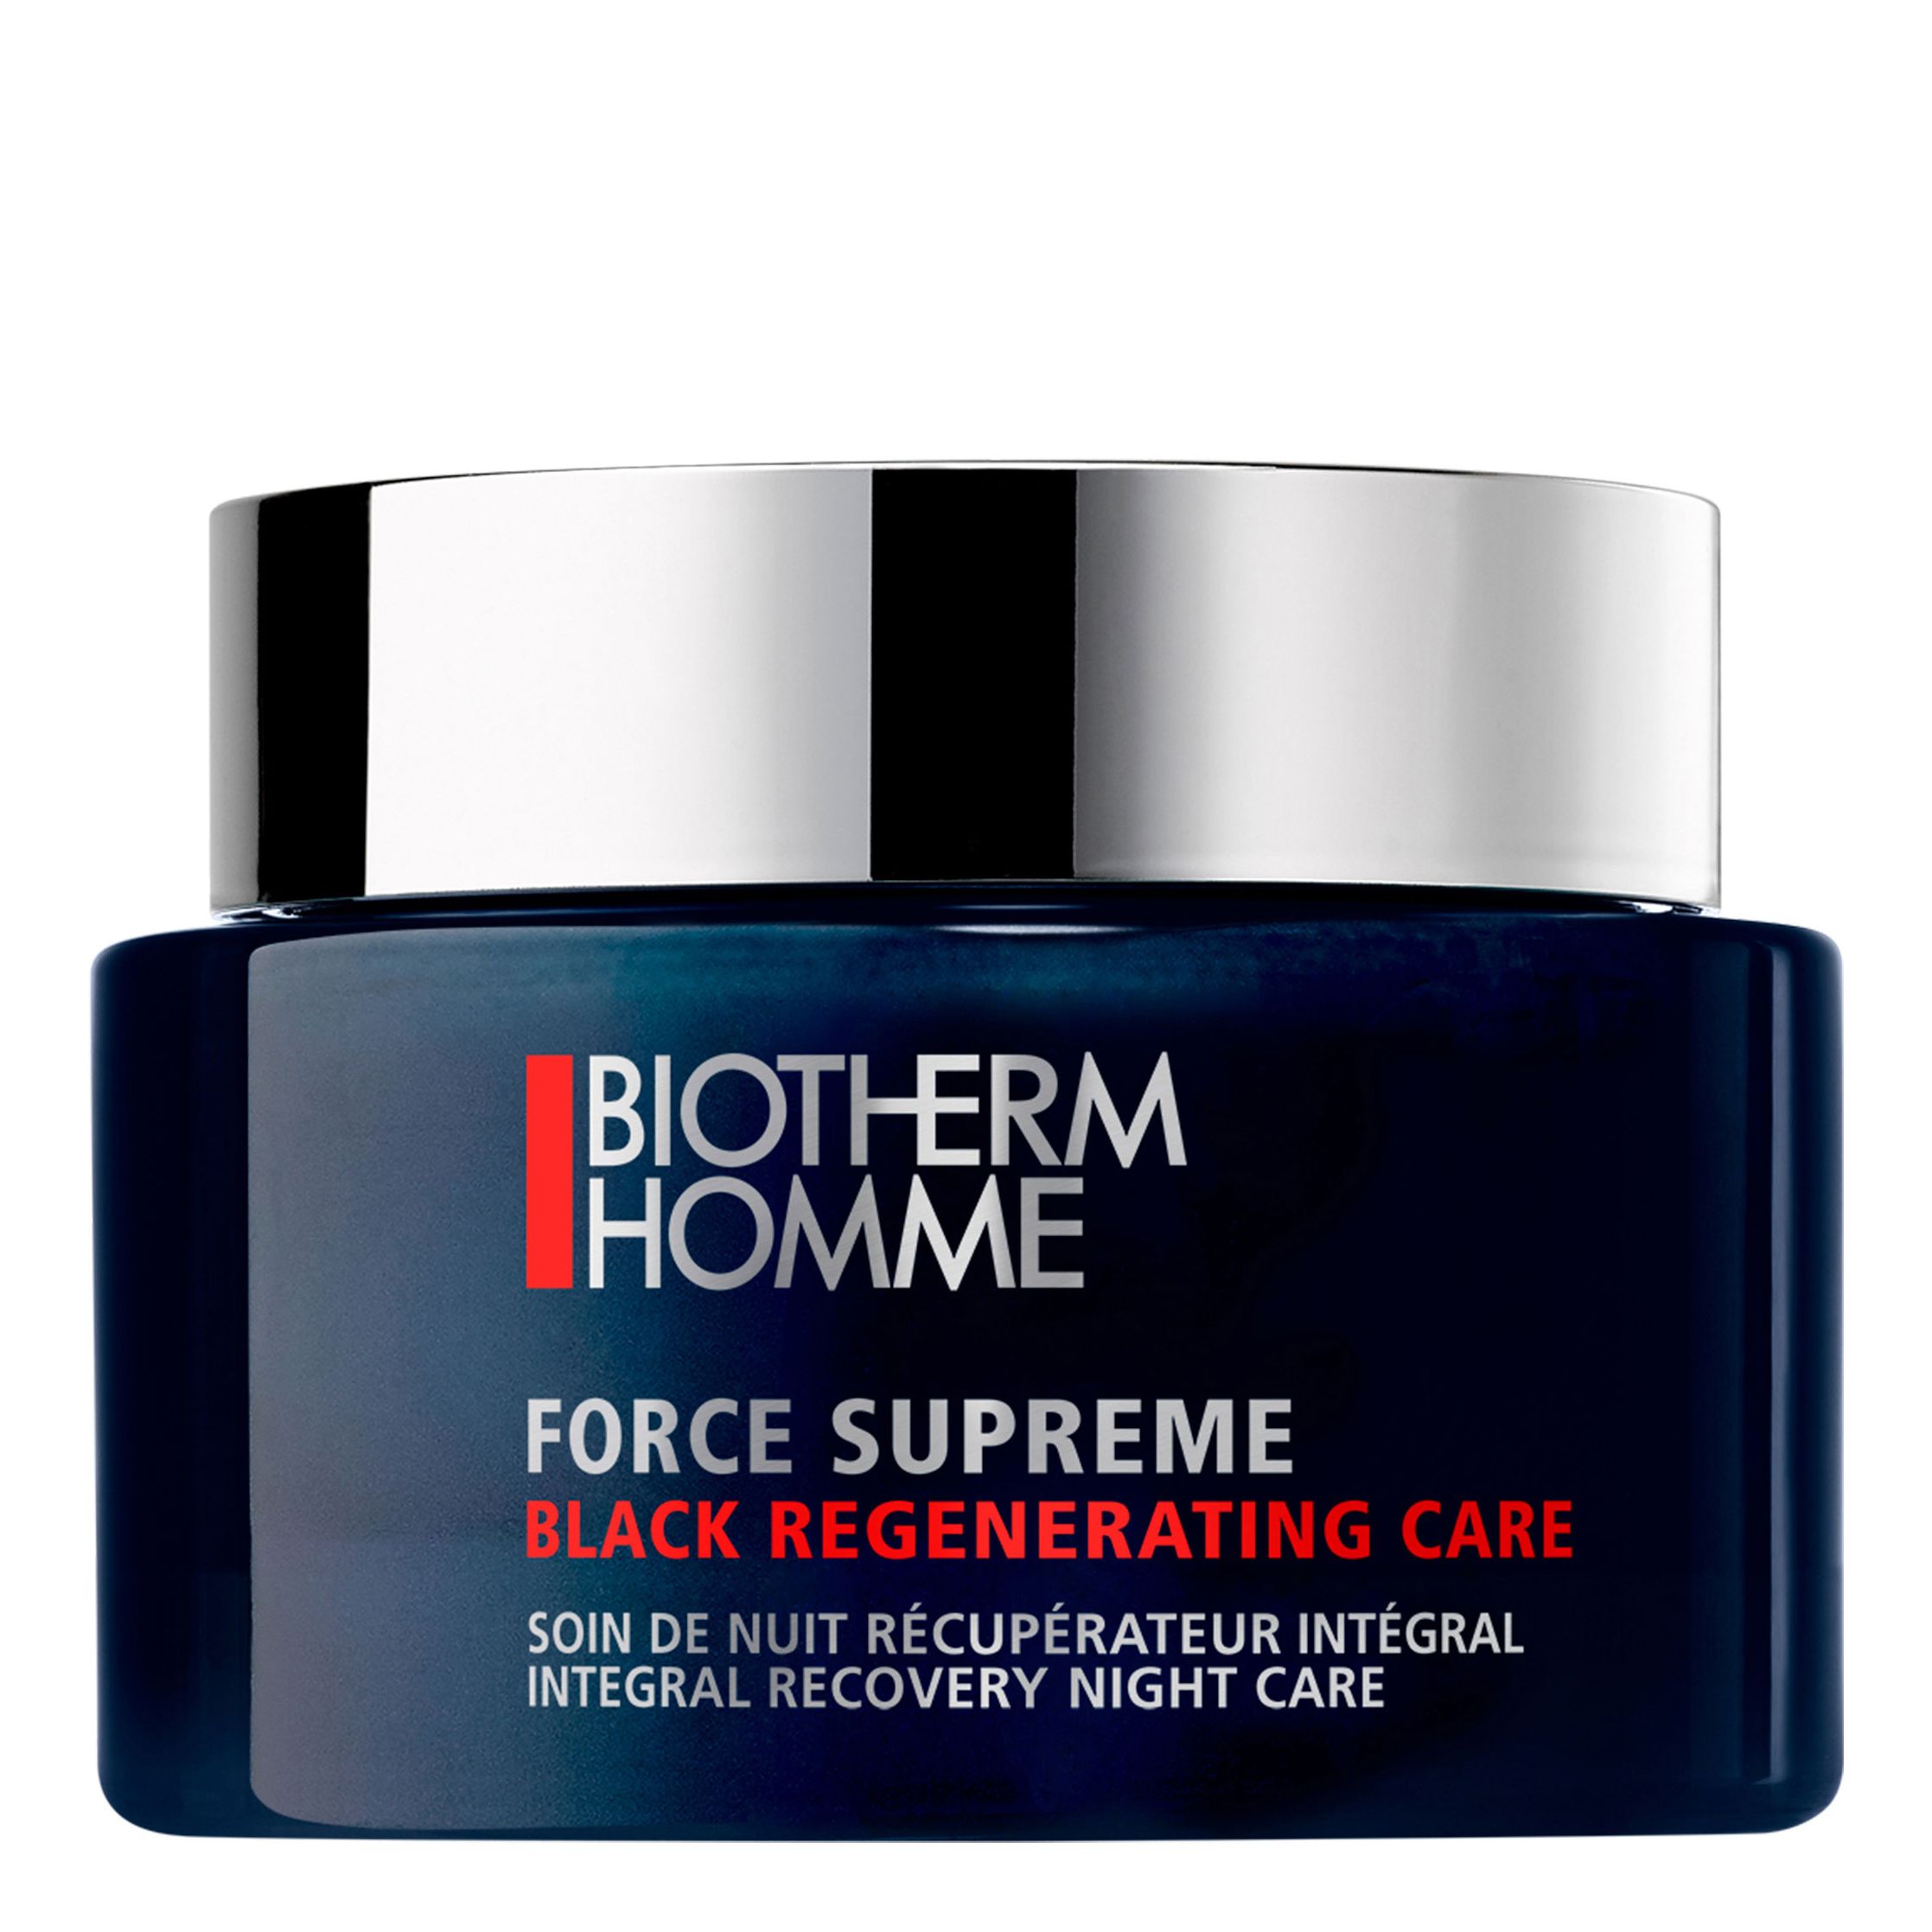 Force Supreme. BIOTHERM HOMME Mascarilla Force Supreme Black 50ml